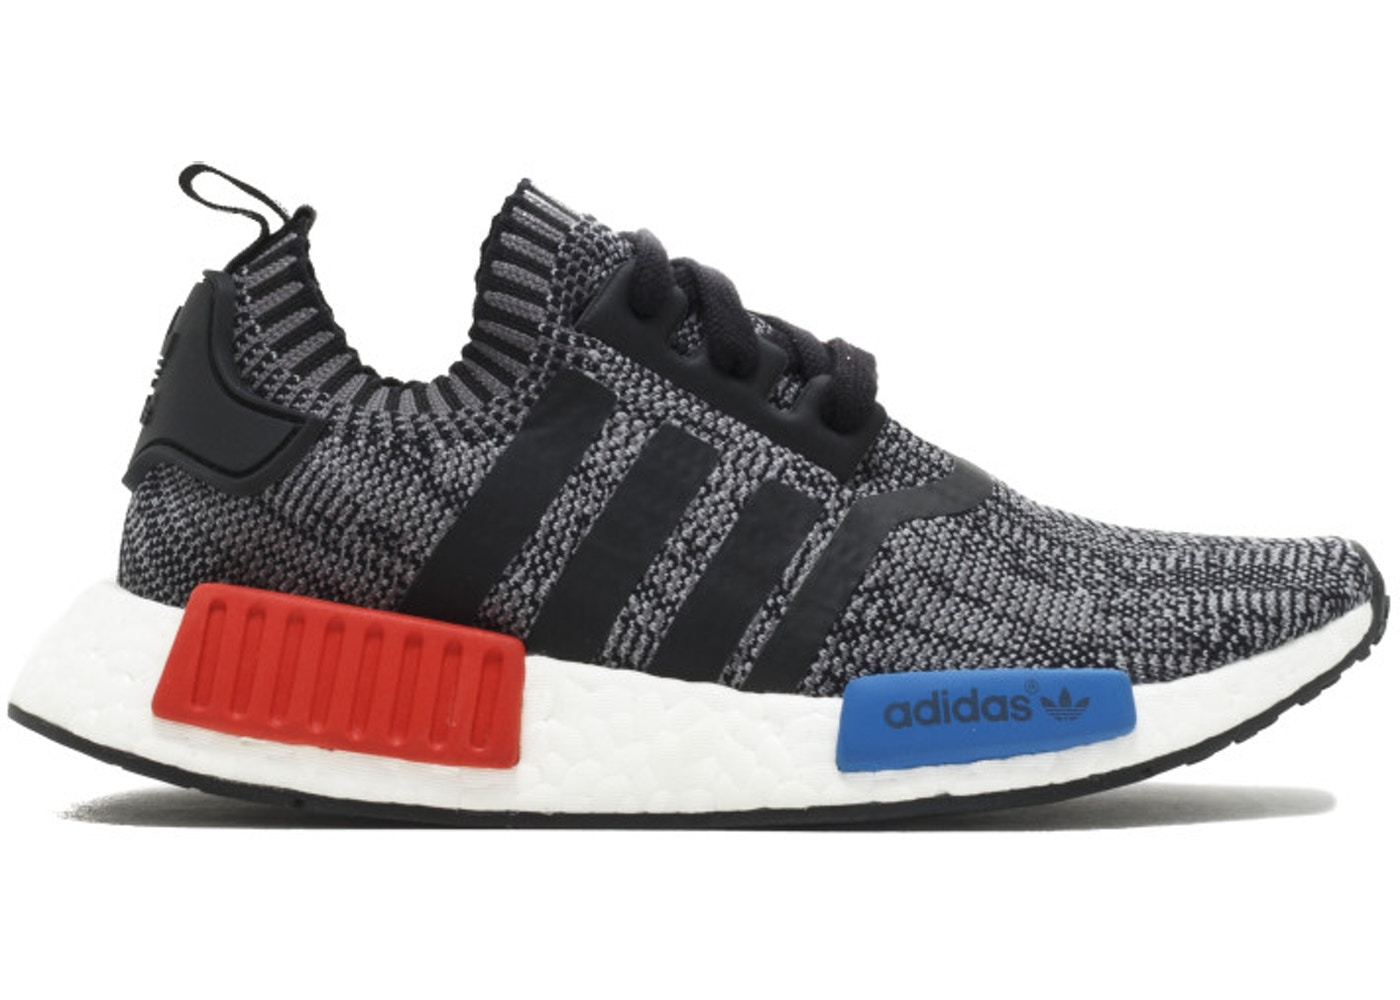 best sneakers 6d8ea 98fa8 adidas NMD R1 Primeknit Friends and Family